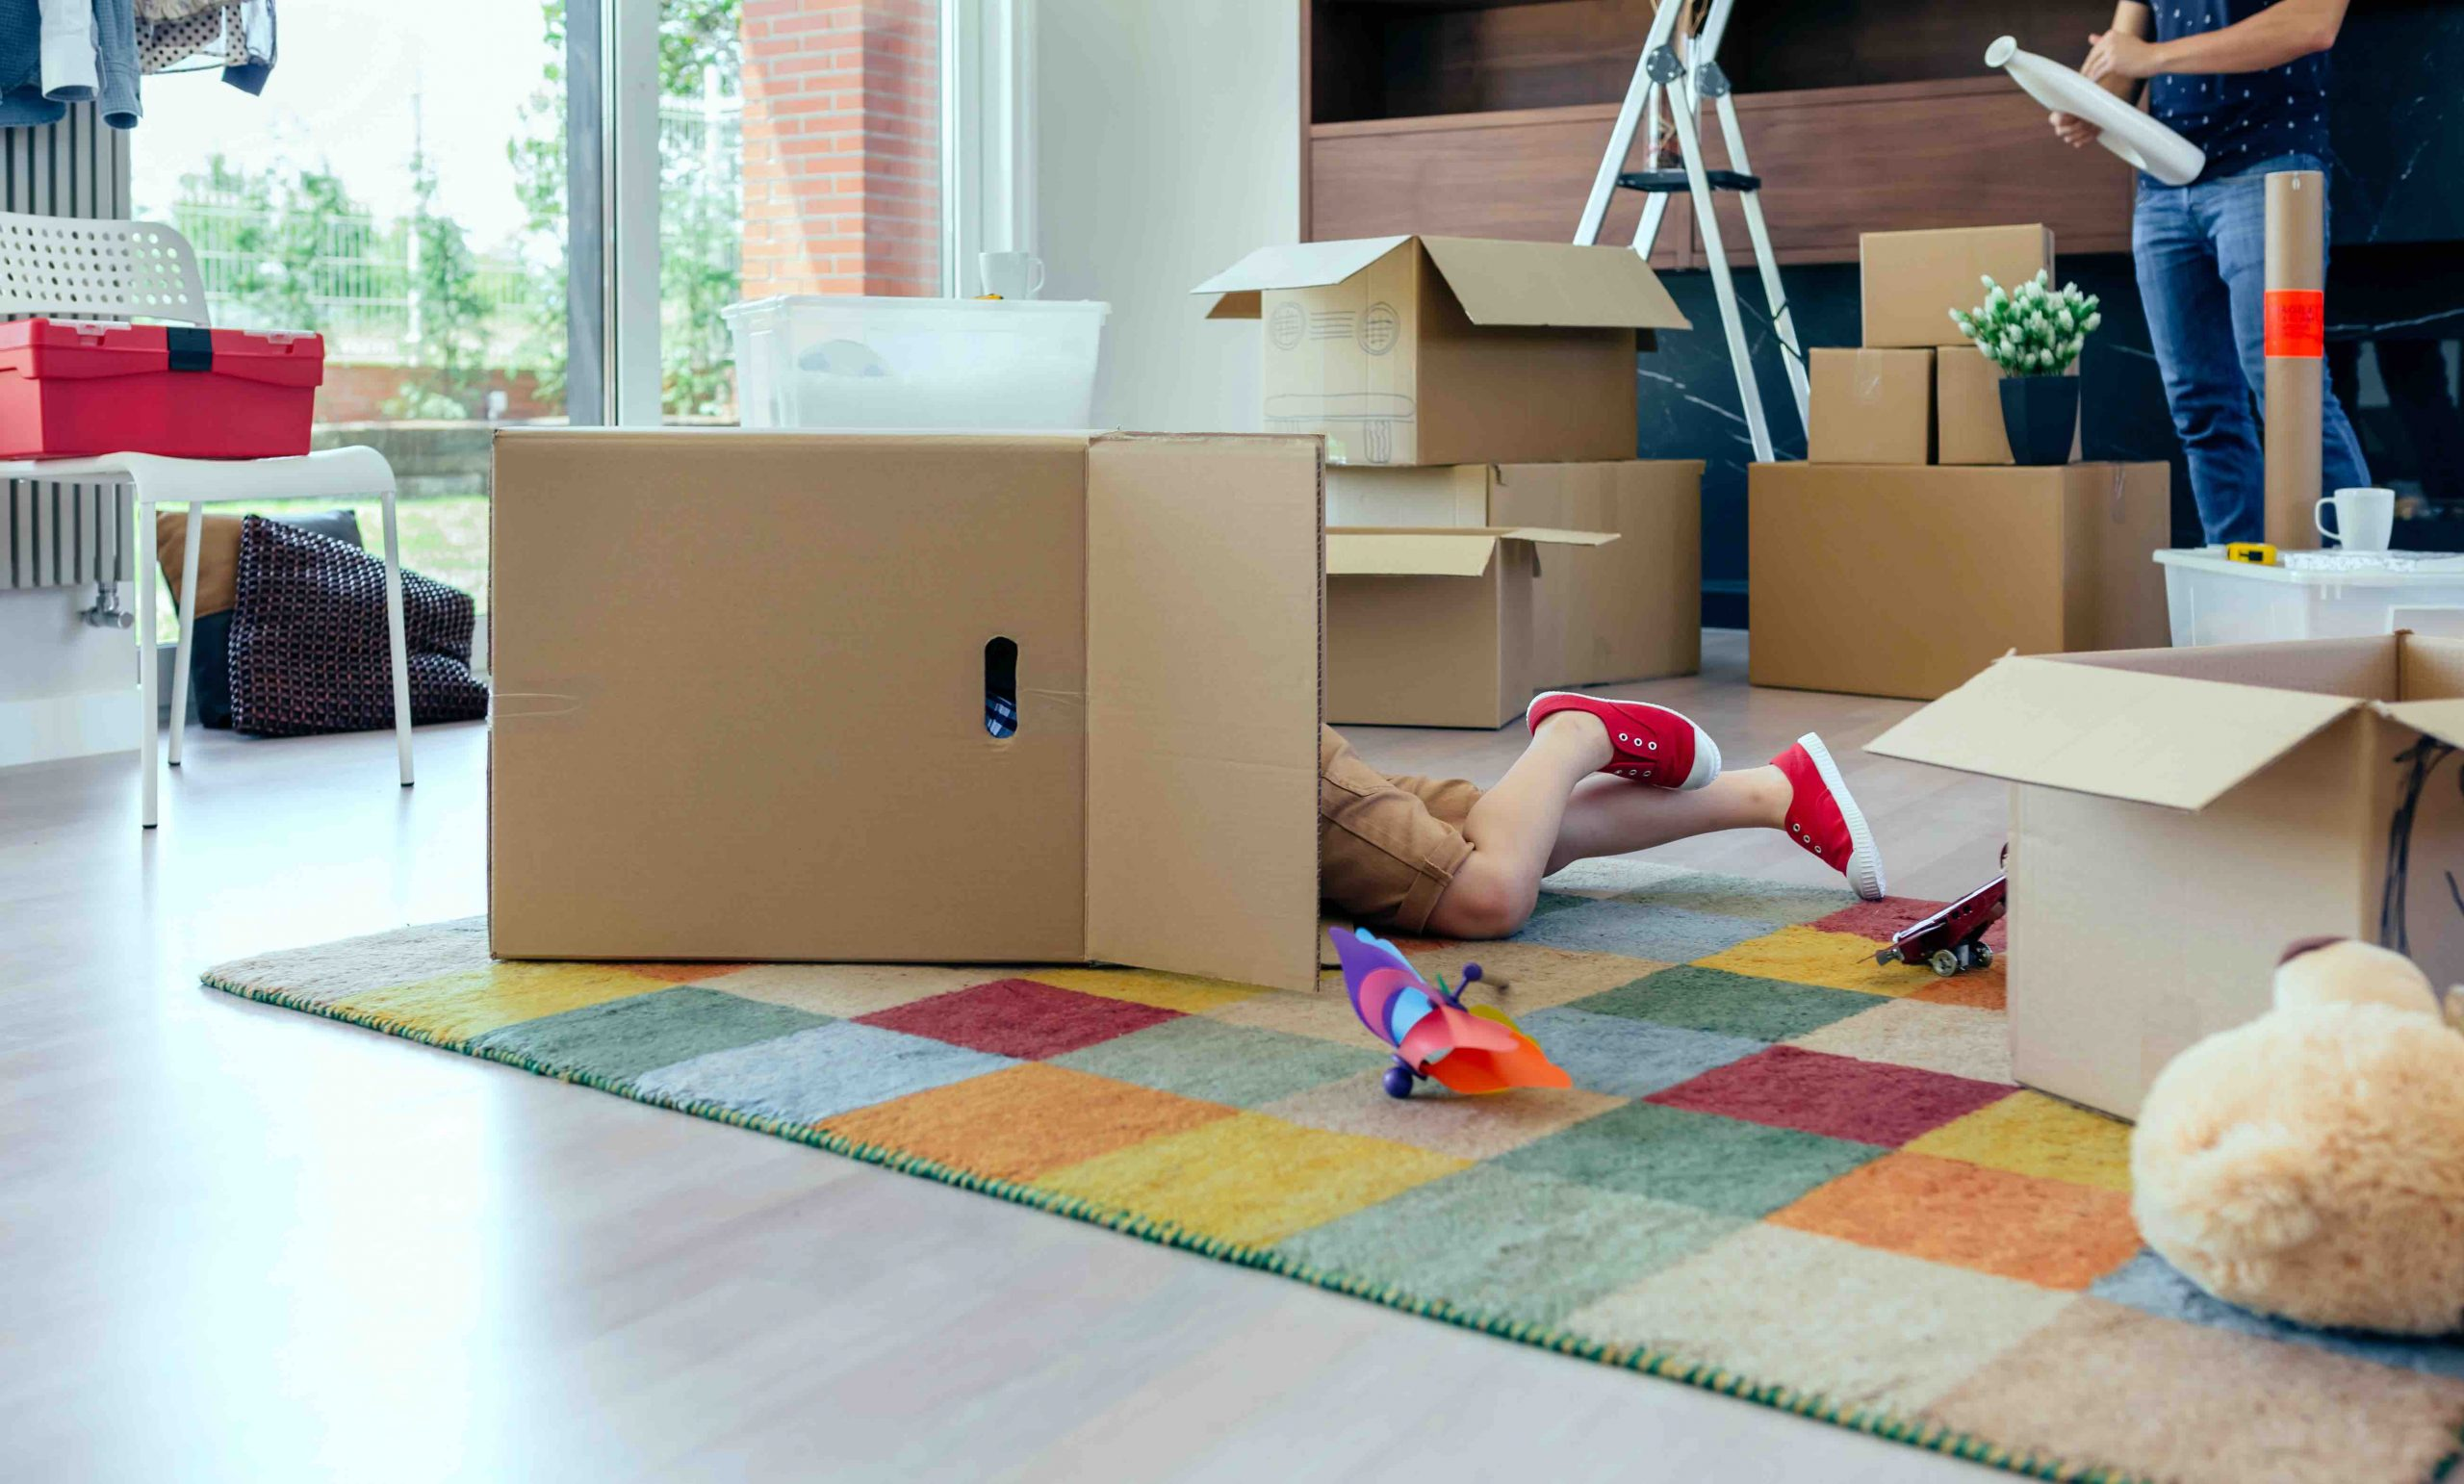 Little boy playing inside a moving box while his father unpacks in the living room